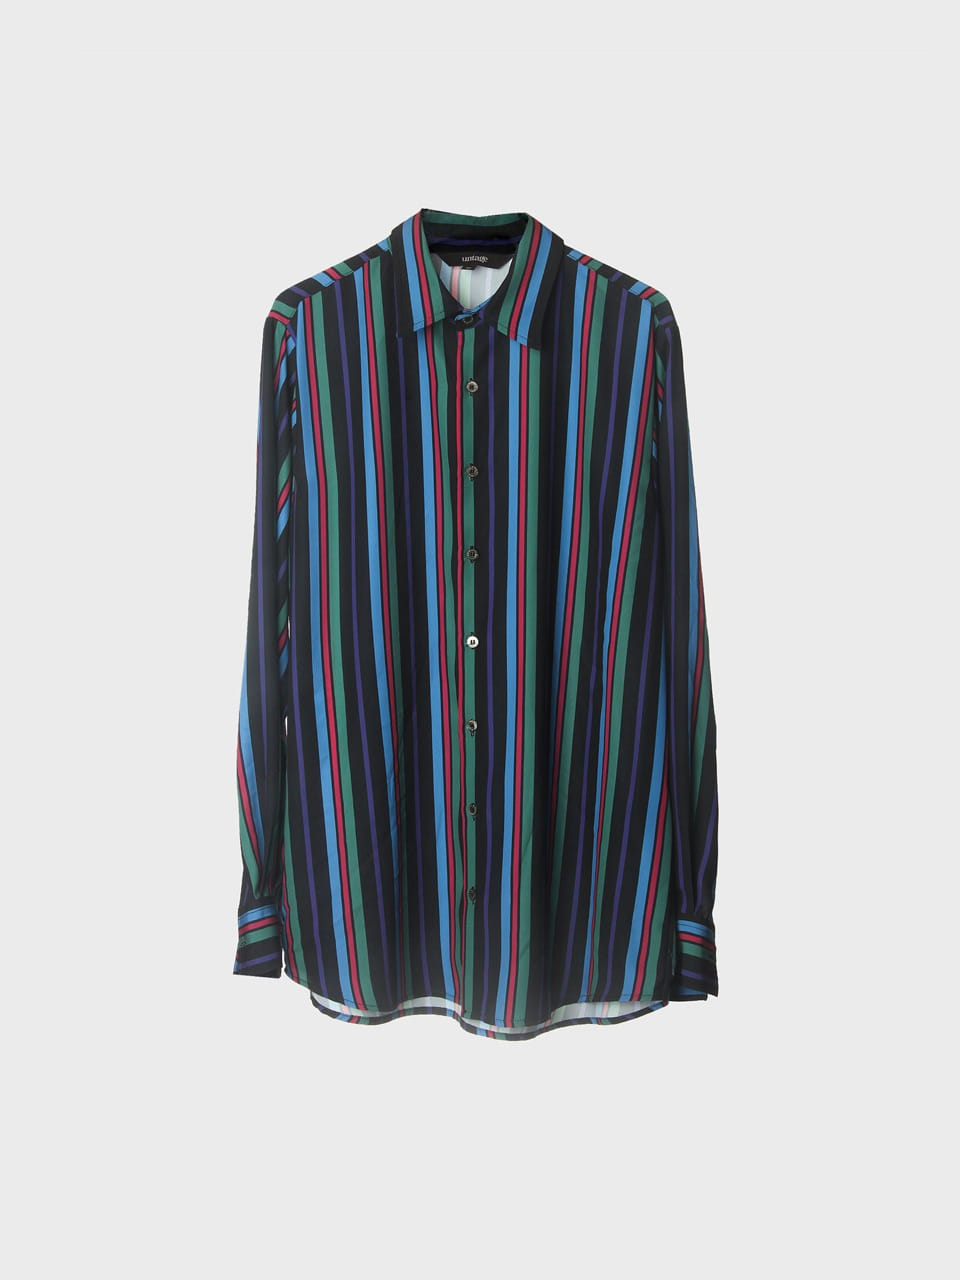 deep stripe shirts